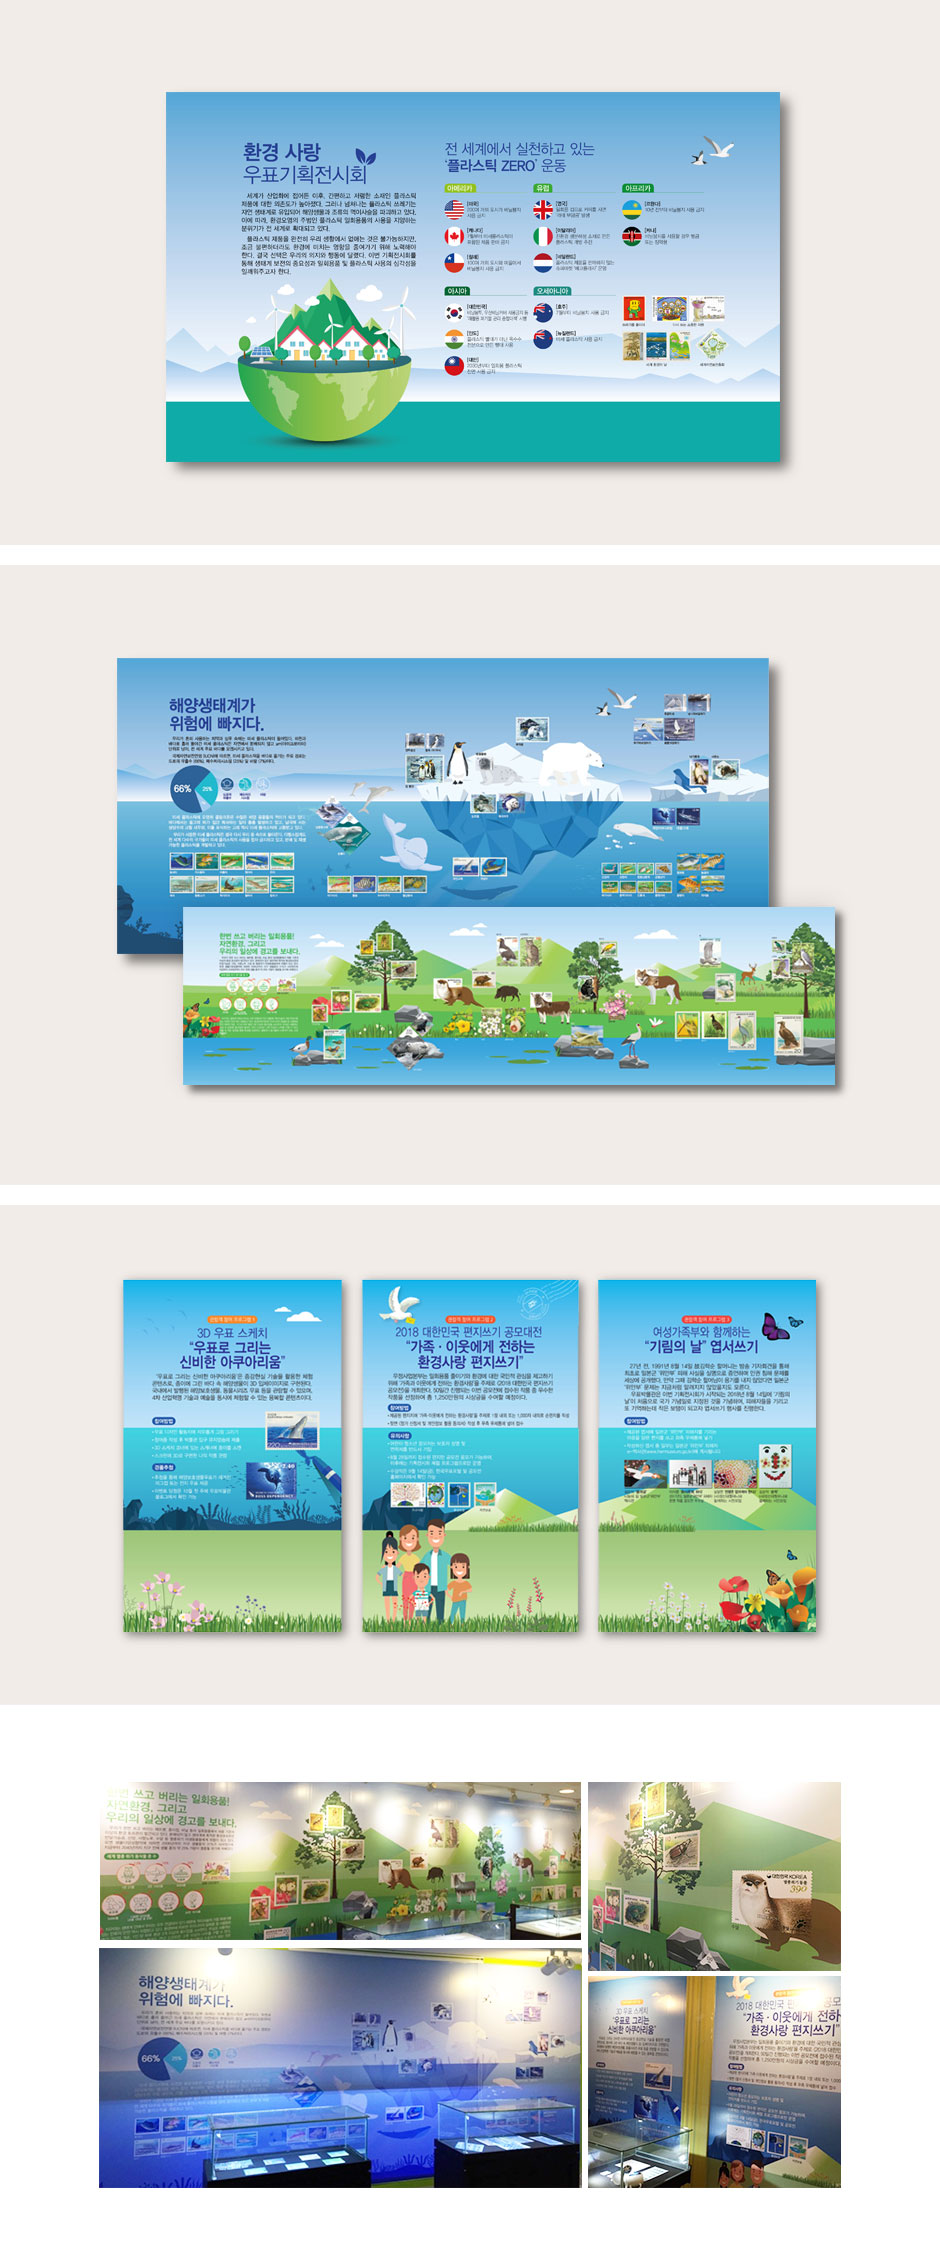 2018_Korea-Postal-Service-Agency-2018-World-Day-Stamps-history-exhibition-banner-design2